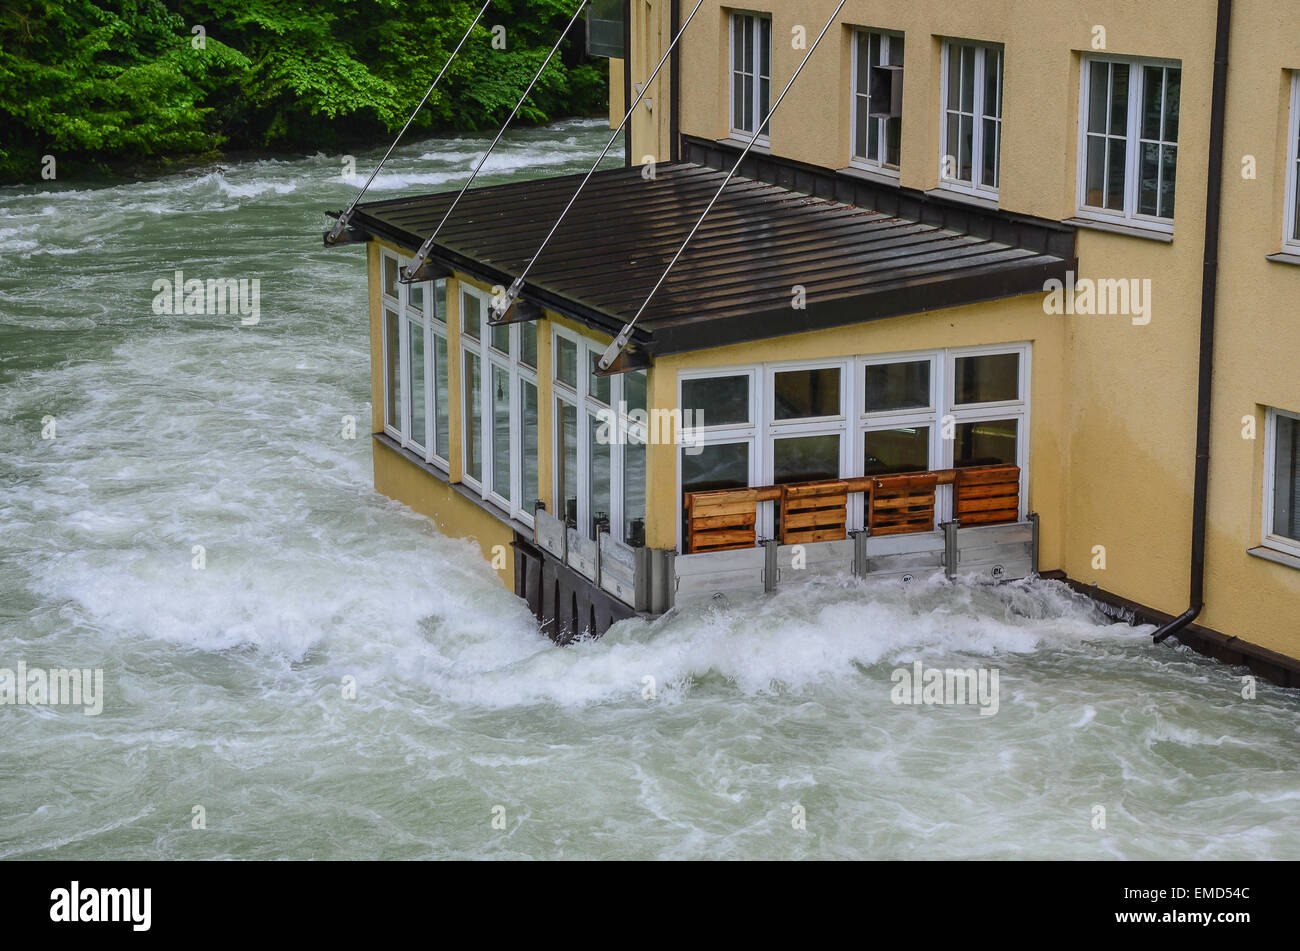 Gmund papermakers production site at the Mangfall river flooded - Stock Image